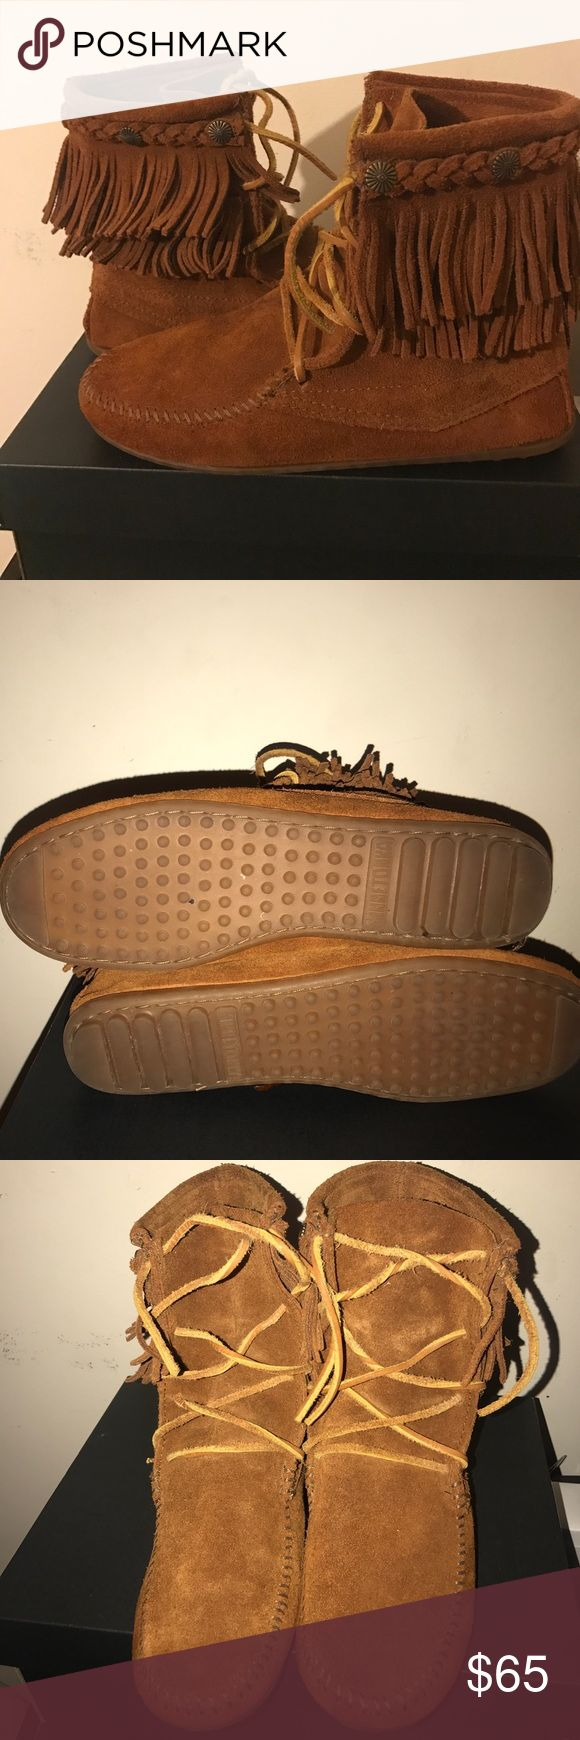 Minnetonka Moccasins ankle boots!! SIZE 8! BOOTS ONLY WORN TWICE, IN GREAT CONDITION Minnetonka Shoes Ankle Boots & Booties